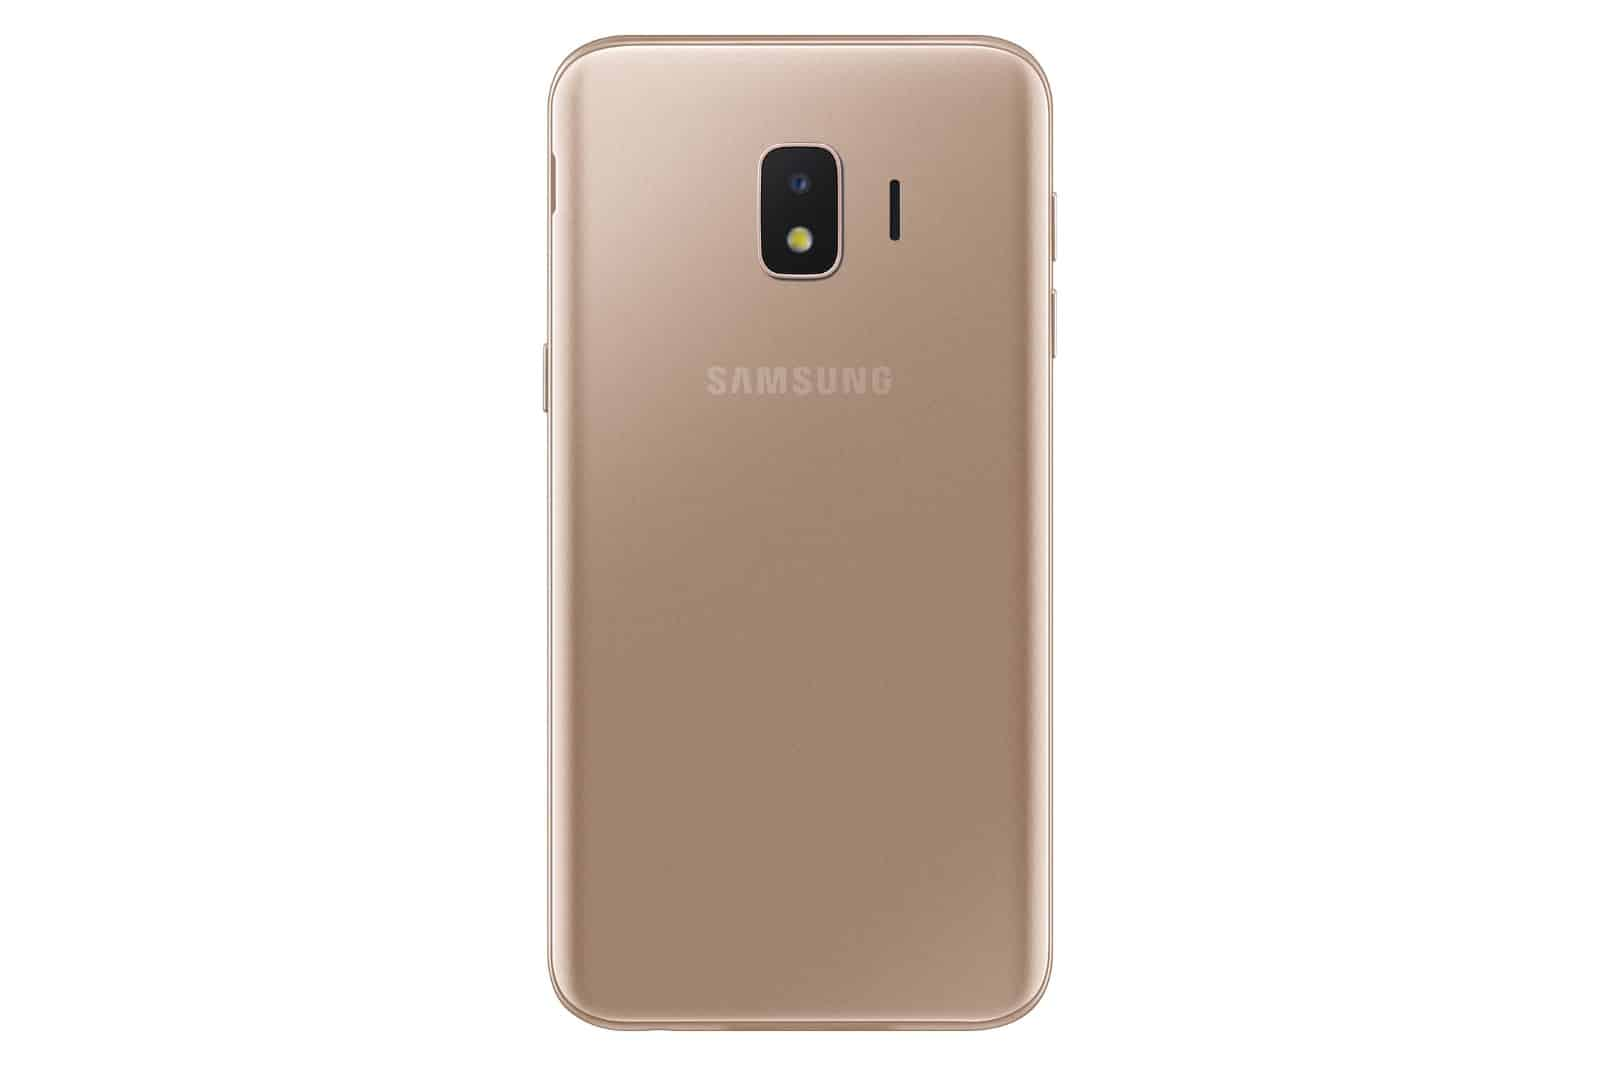 Samsung Galaxy J2 Core official image 2